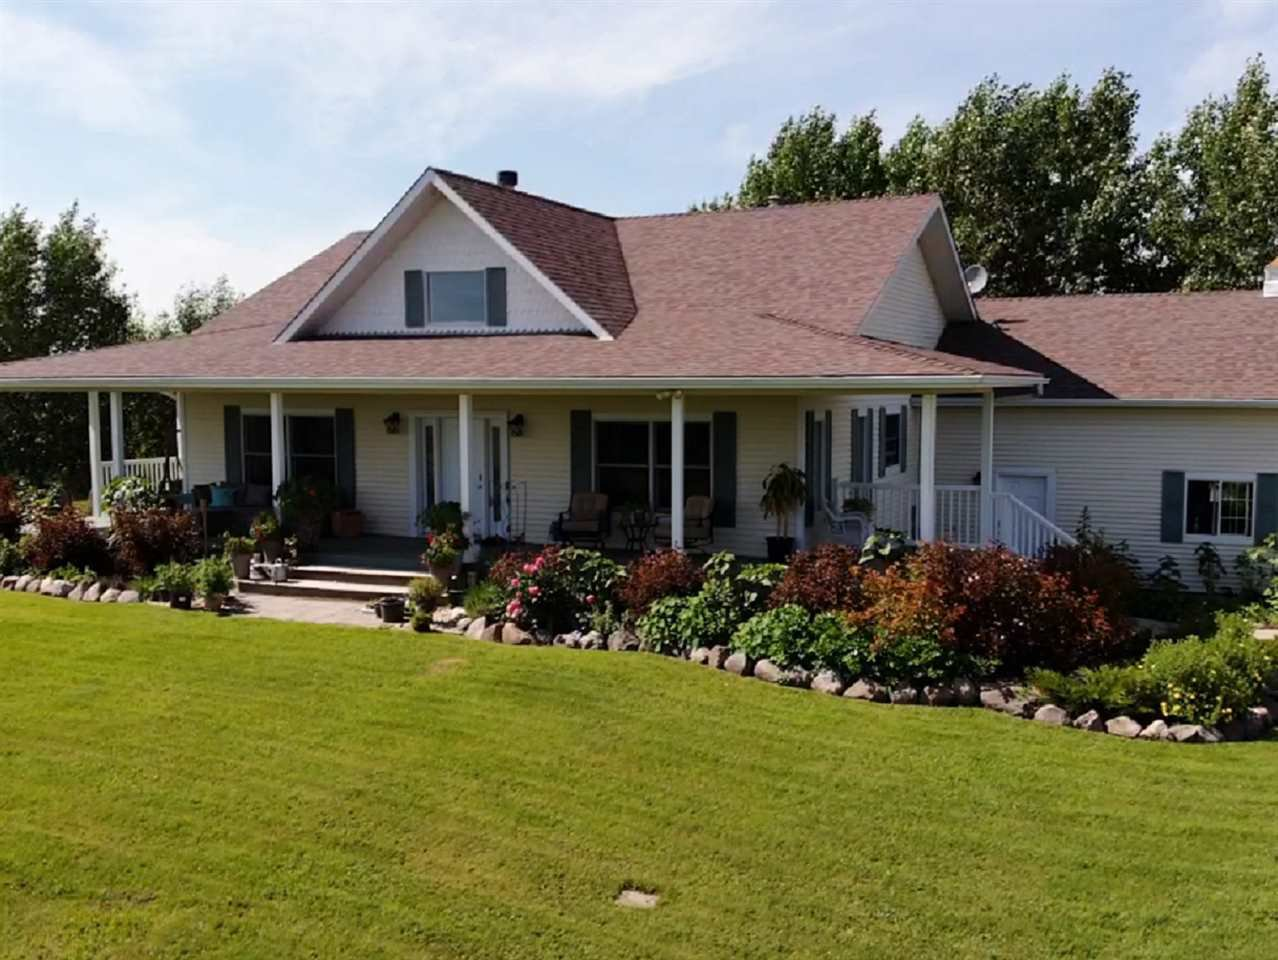 Main Photo: 55116 Range Road 230: Rural Sturgeon County House for sale : MLS®# E4207875